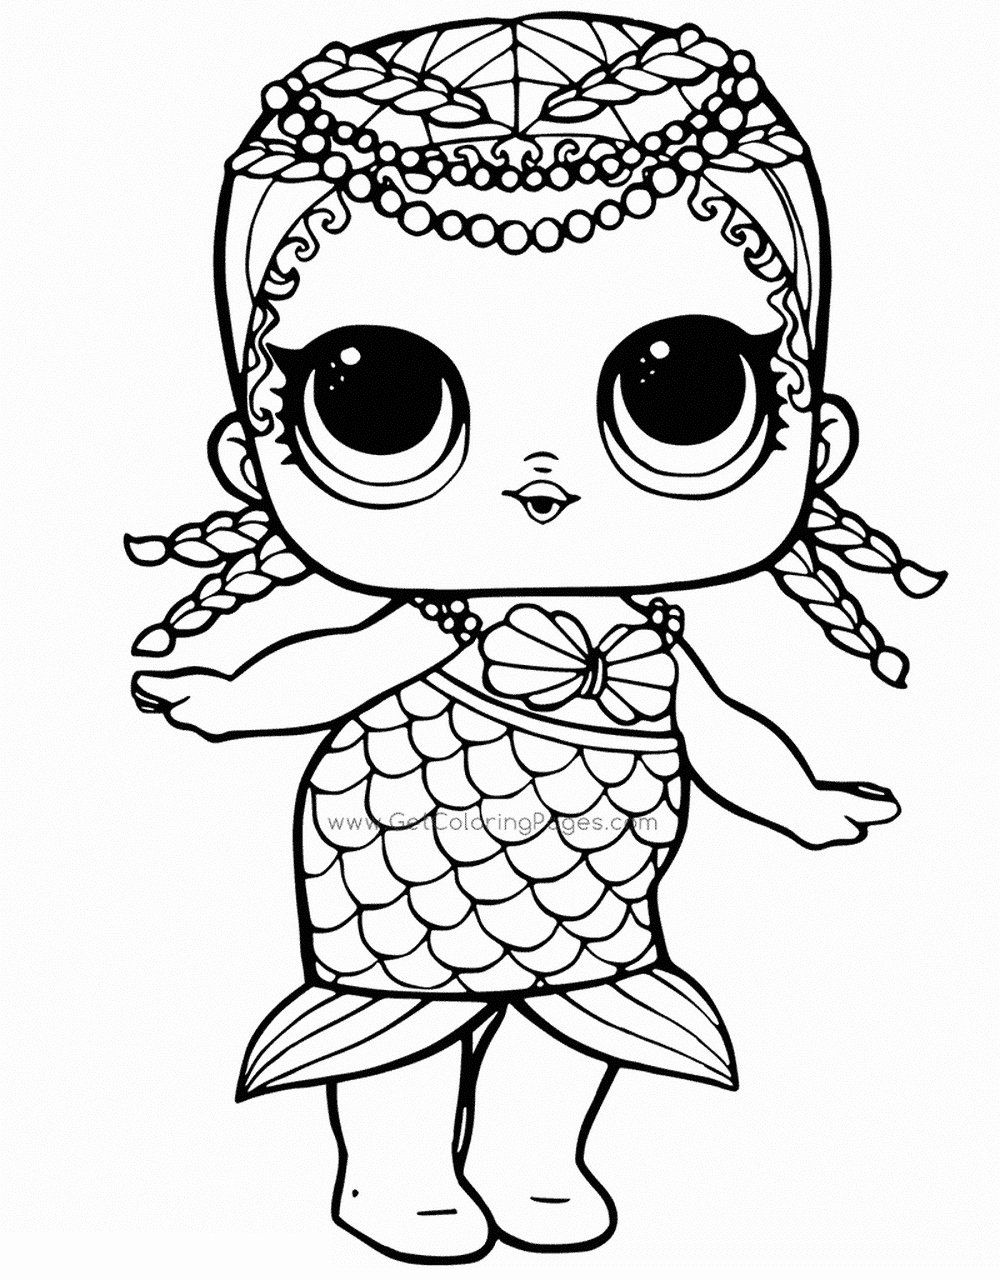 Baby Doll Coloring Page Fresh Lol Surprise Dolls Coloring Pages Print Them For Free Mermaid Coloring Pages Unicorn Coloring Pages Cartoon Coloring Pages